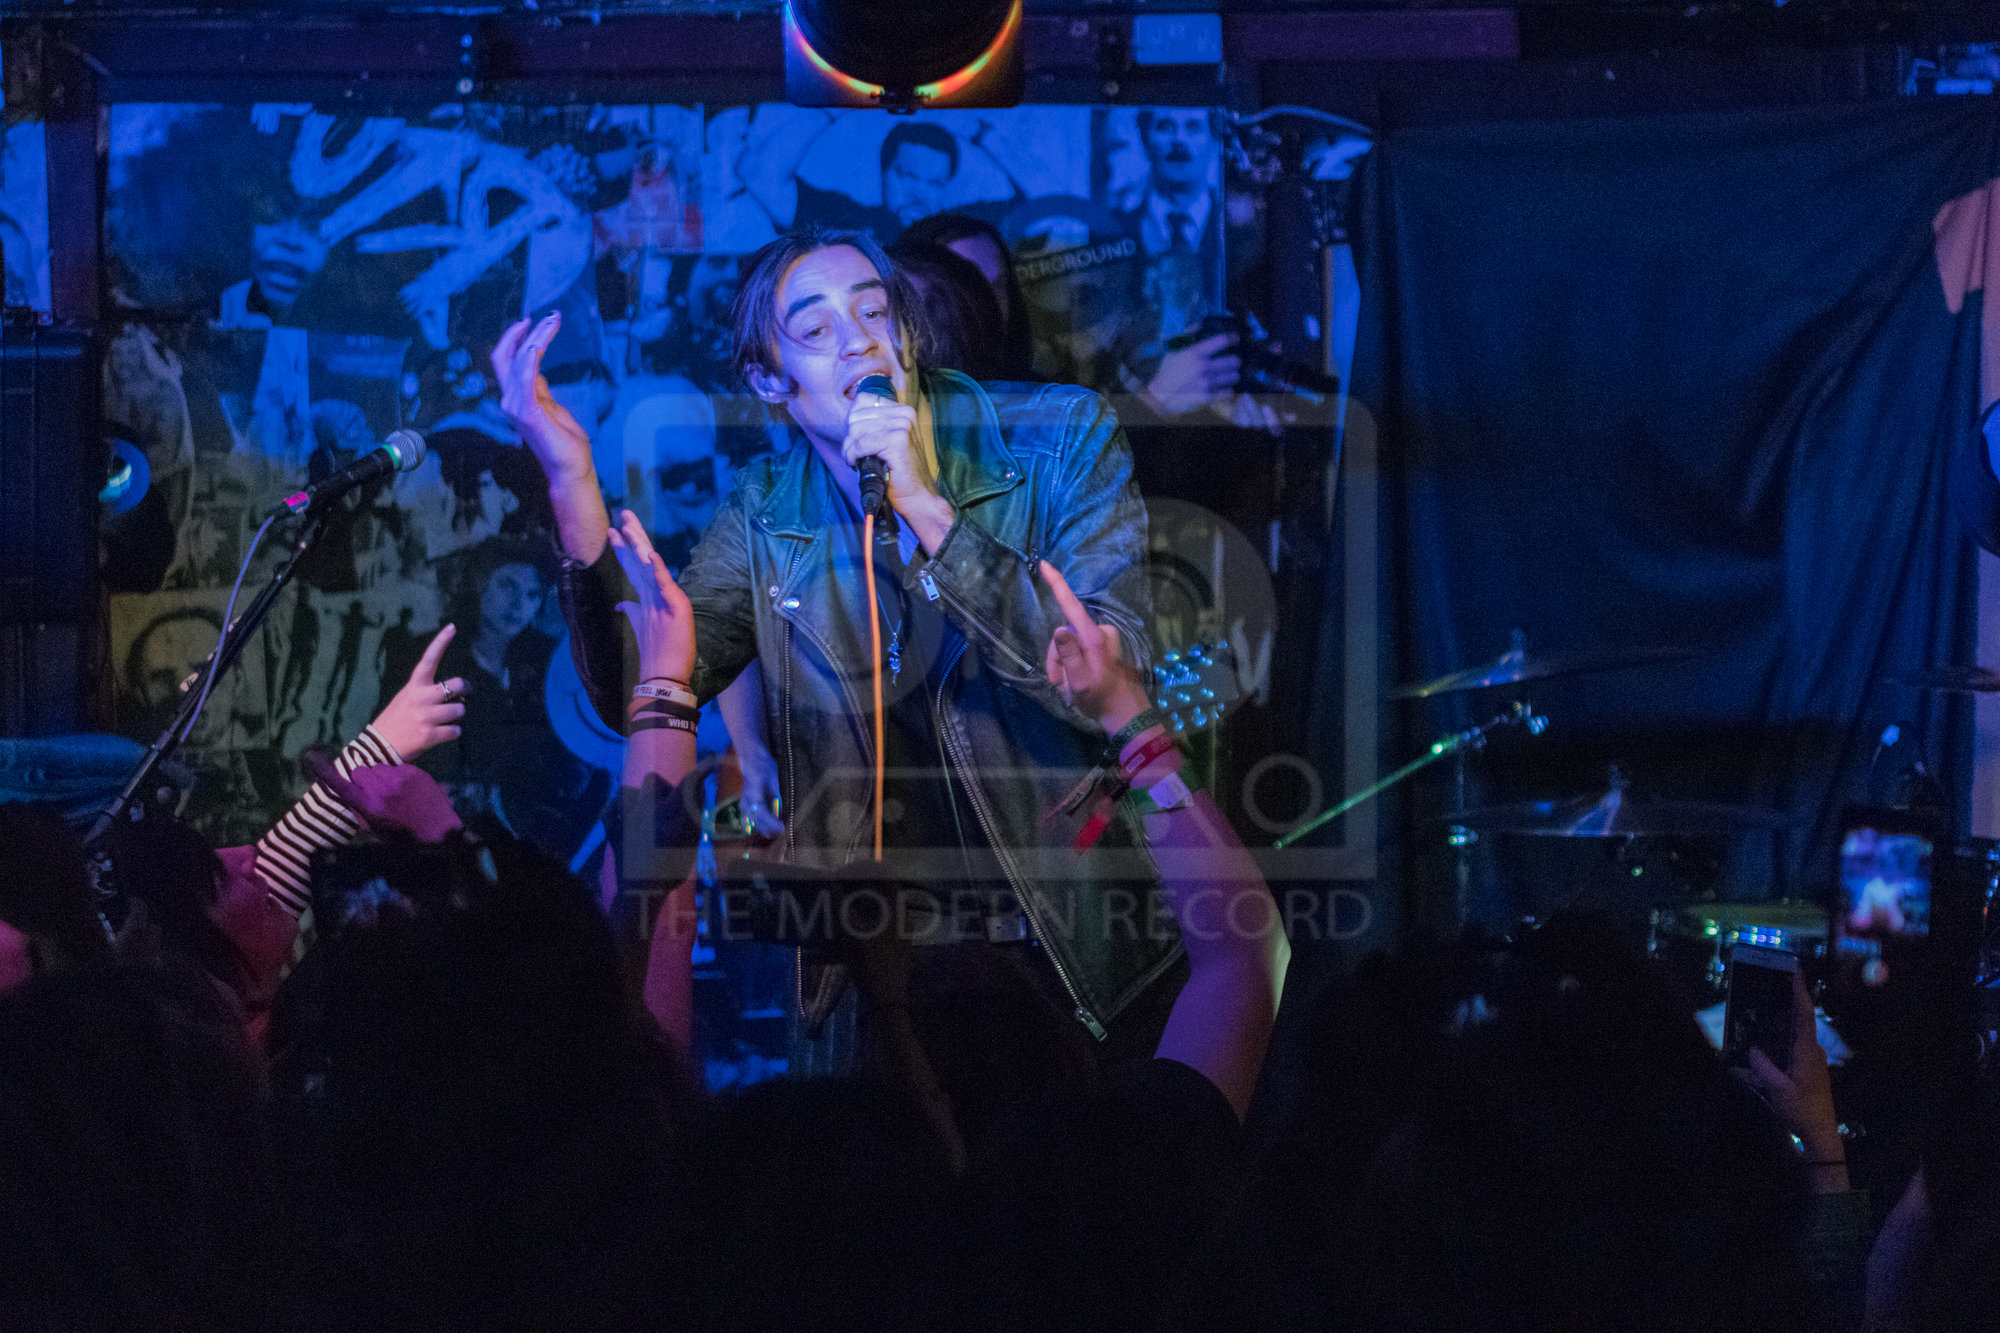 THE FAIM PERFORMING AT NEWCASTLE'S UPON TYNE THINK TANK? - 02.02.2019  PICTURE BY: WILL GORMAN PHOTOGRAPHY